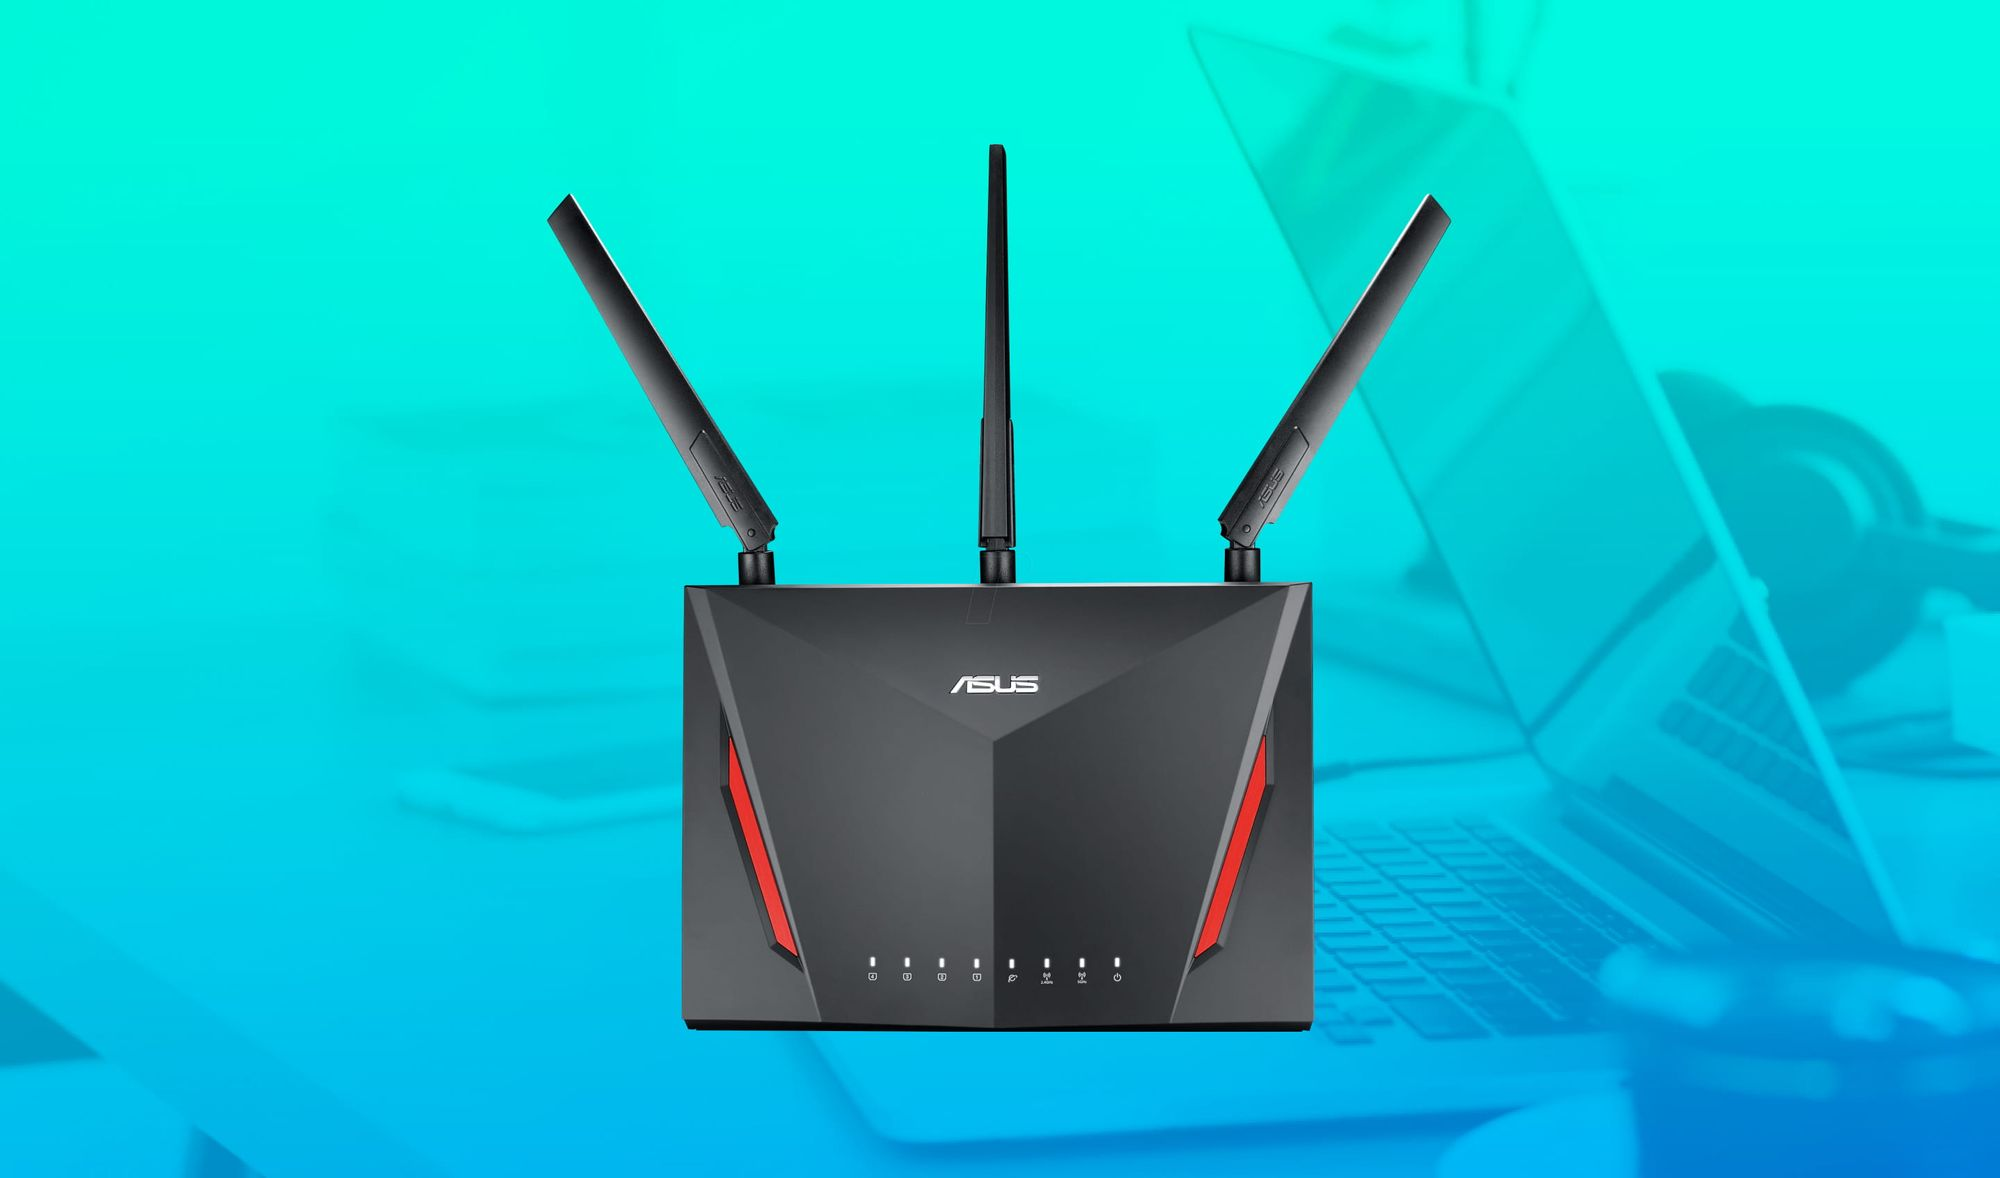 10 Best WiFi Routers for You in 2019